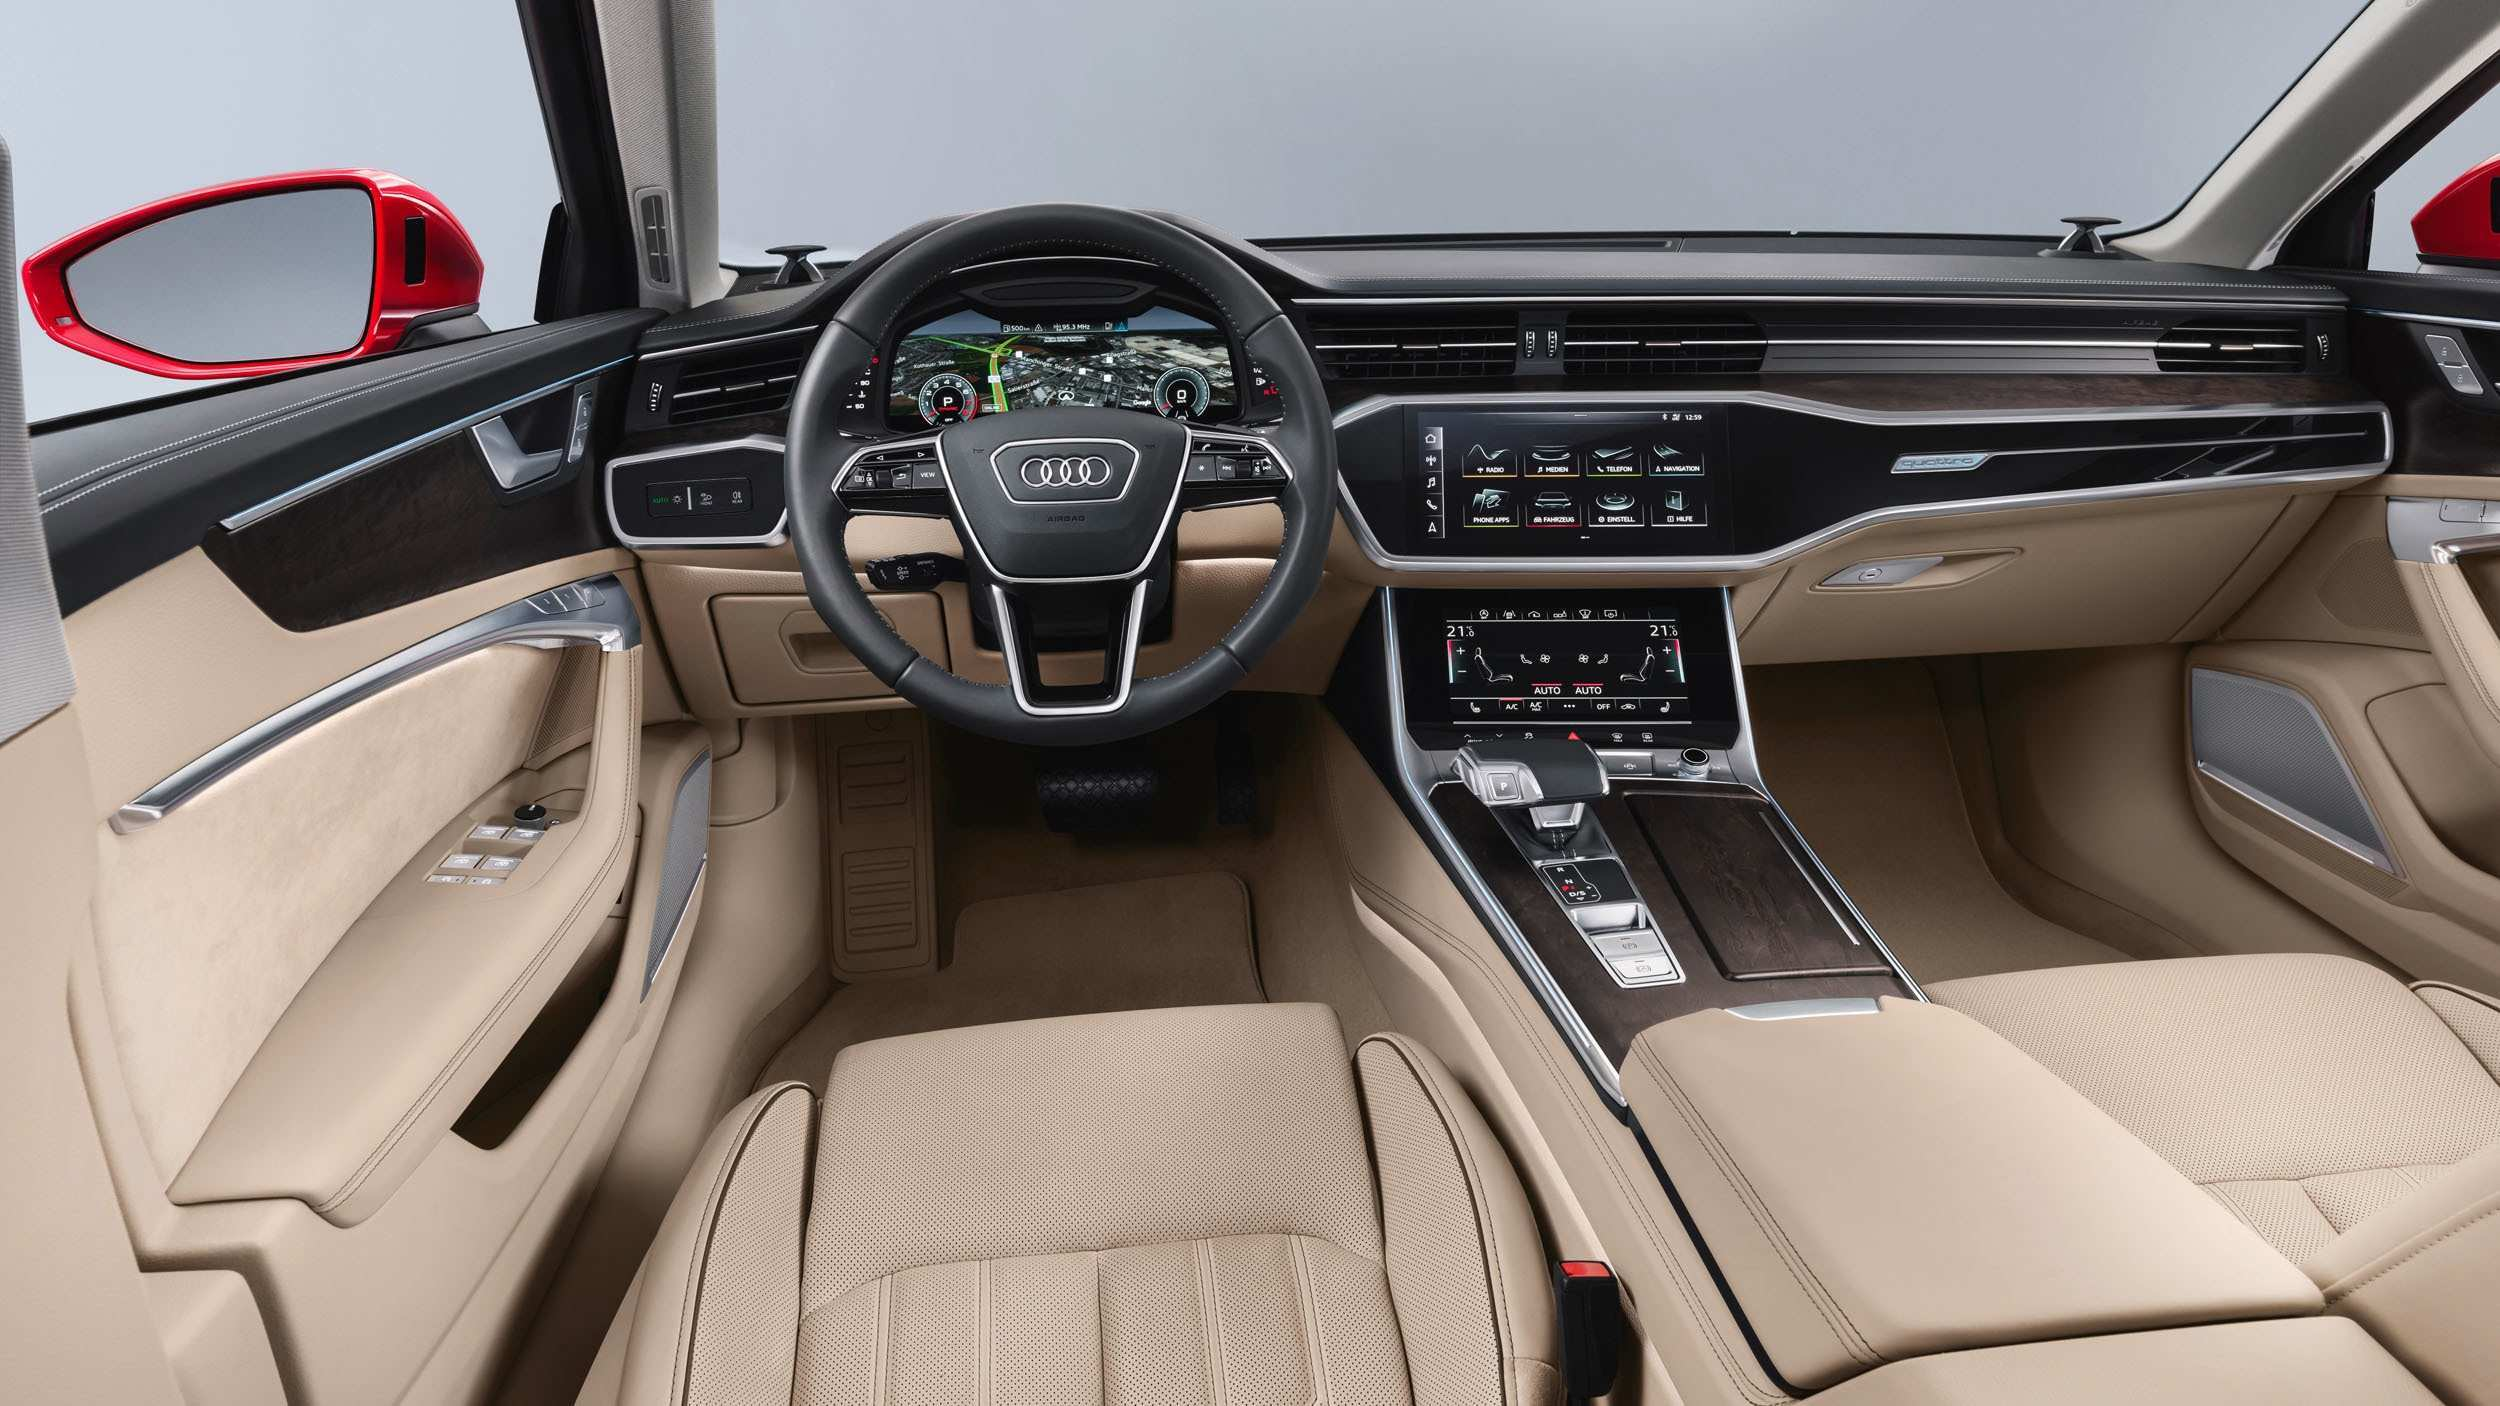 77 Great Best A6 Audi 2019 Interior Rumors Research New with Best A6 Audi 2019 Interior Rumors